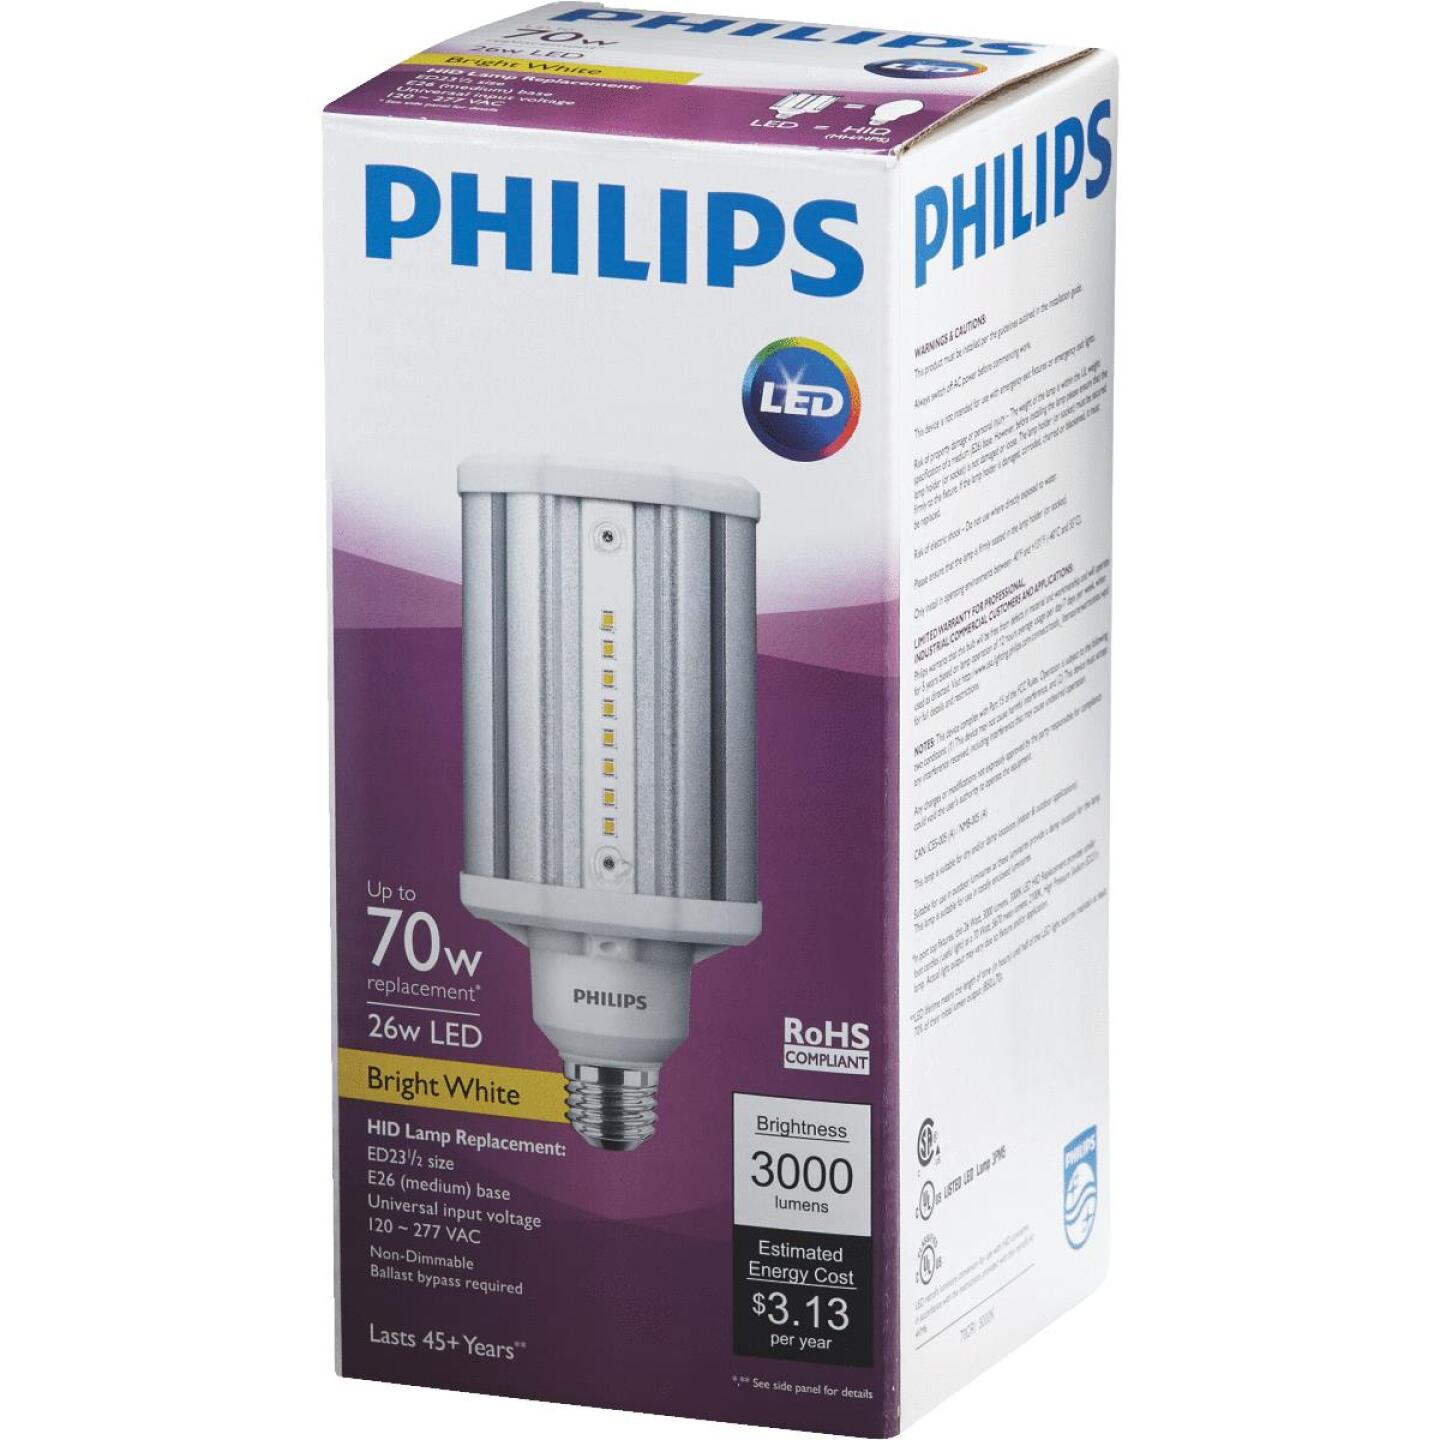 Philips TrueForce 26W Clear Corn Cob Medium Base LED High-Intensity Light Bulb Image 3